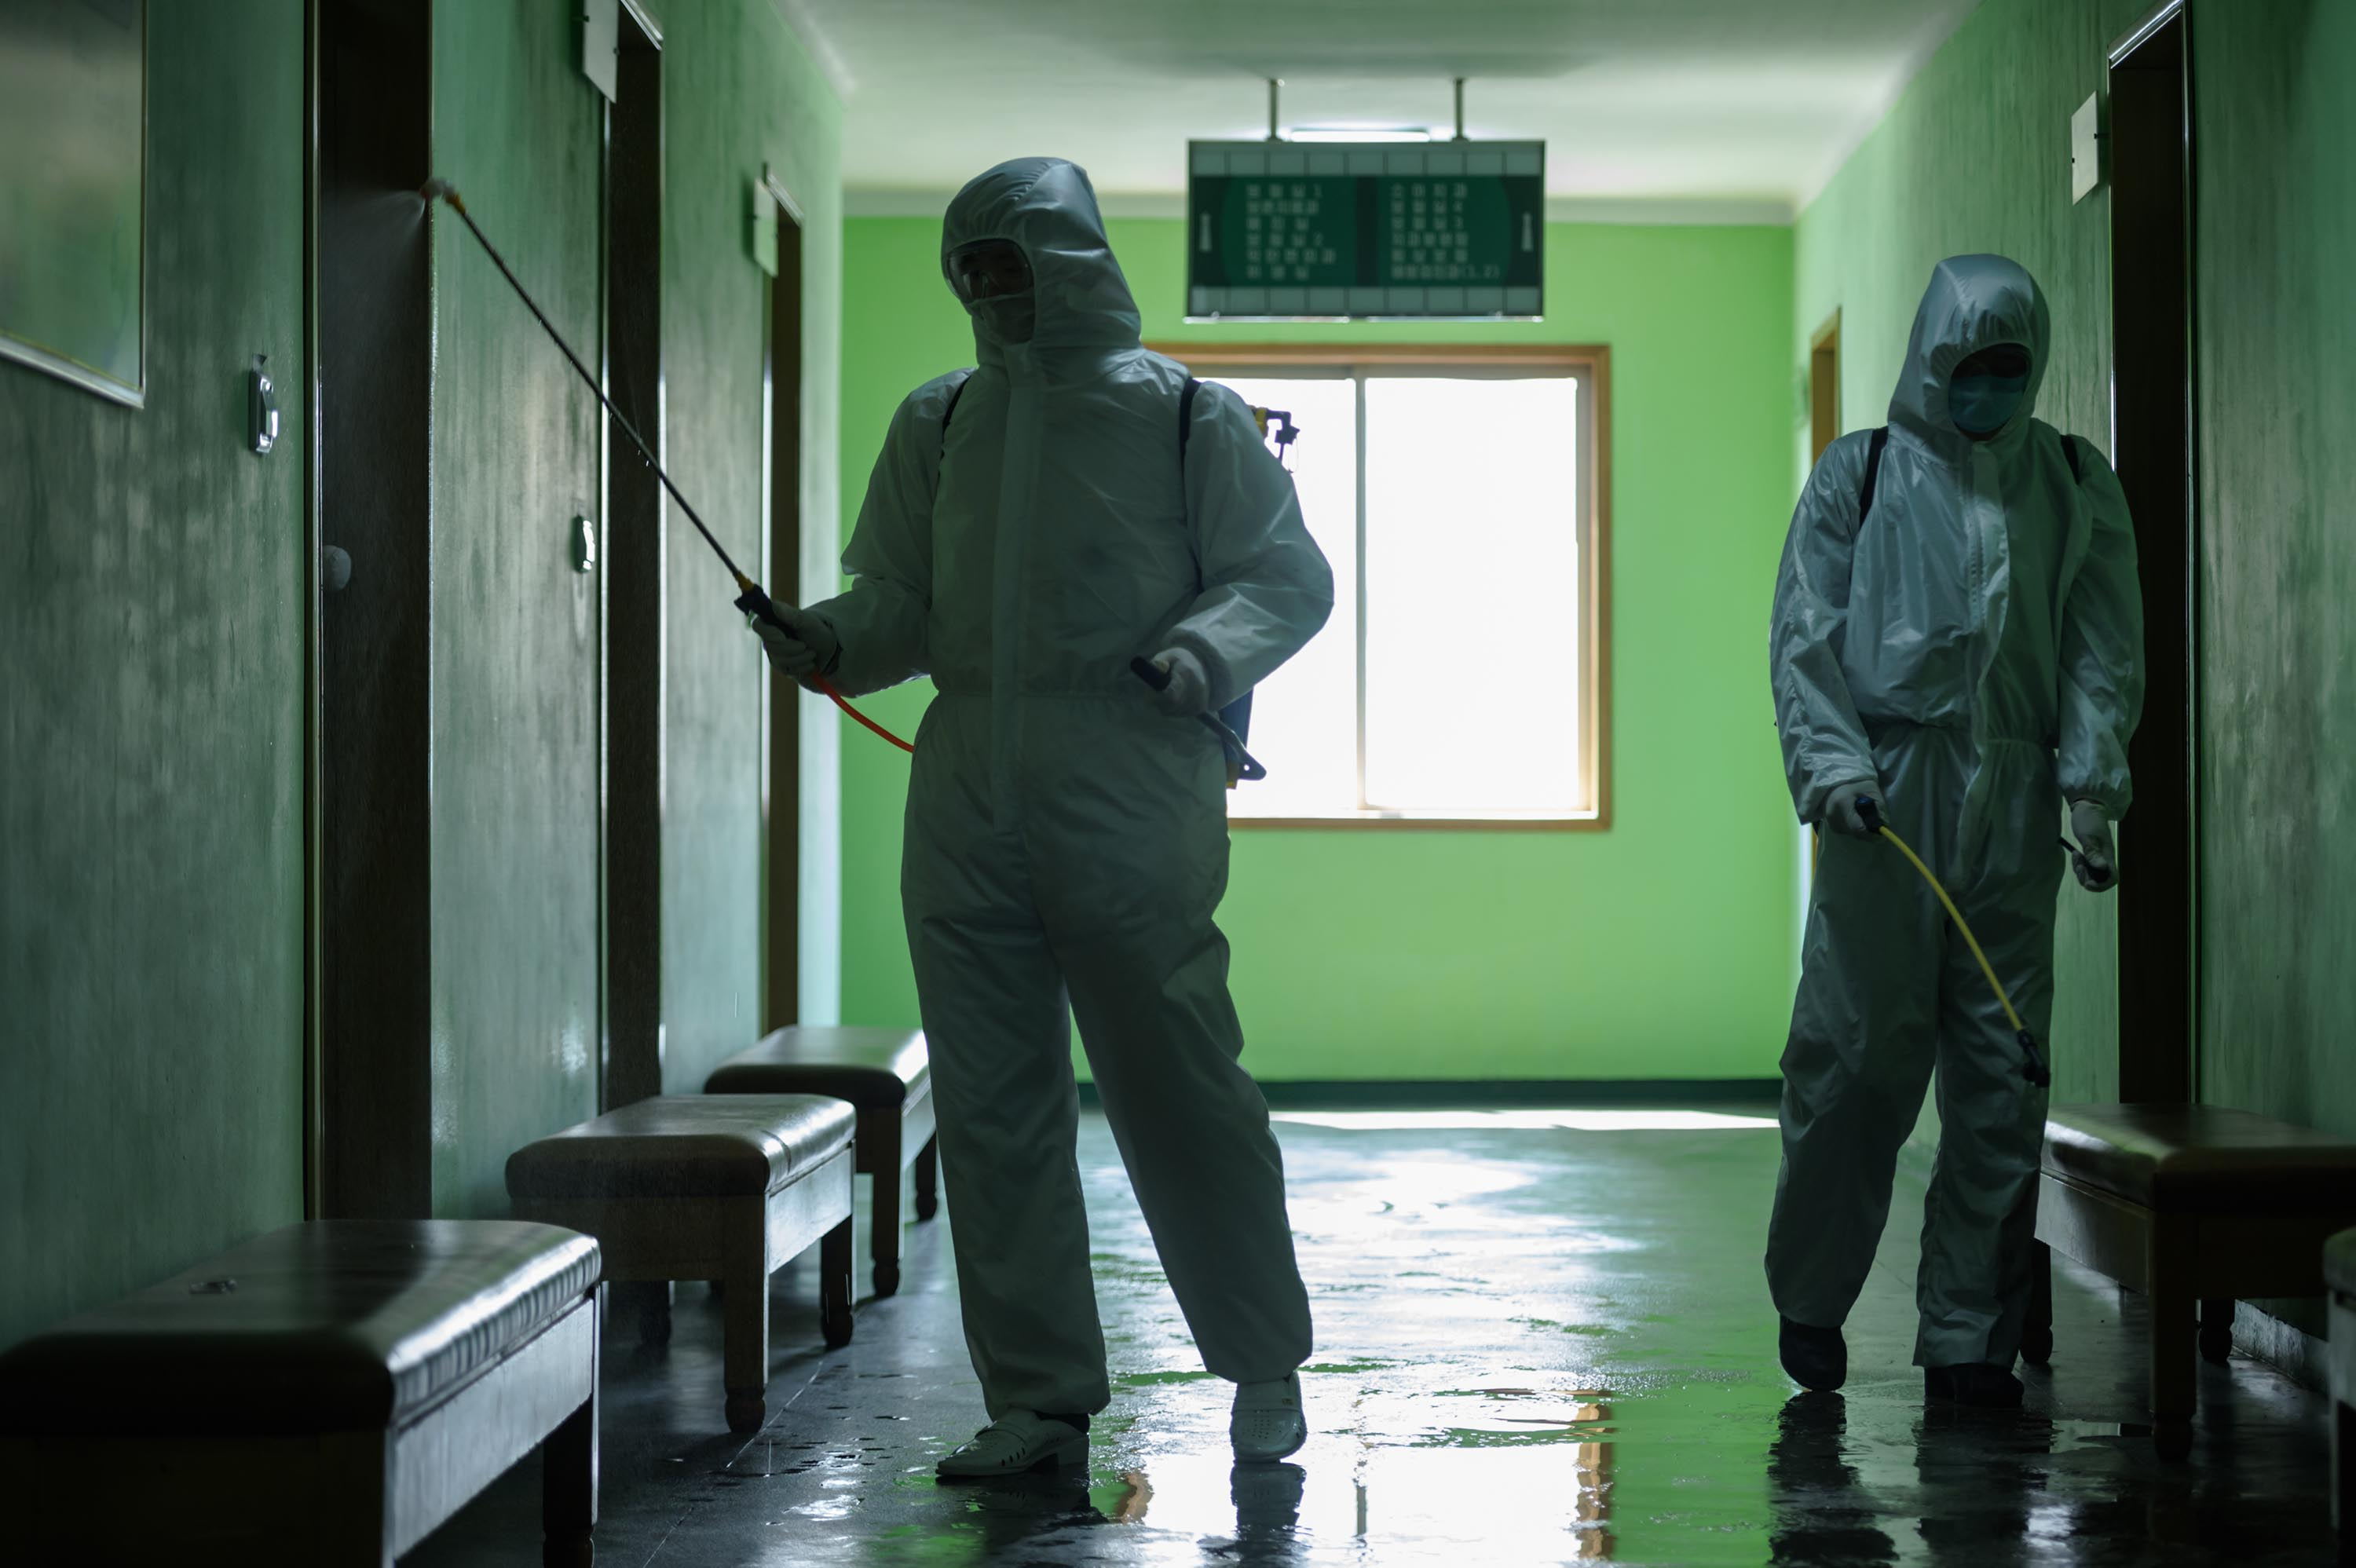 Health officials disinfect a corridor at the Pyongchon District People's Hospital in Pyongyang, North Korea, in April.